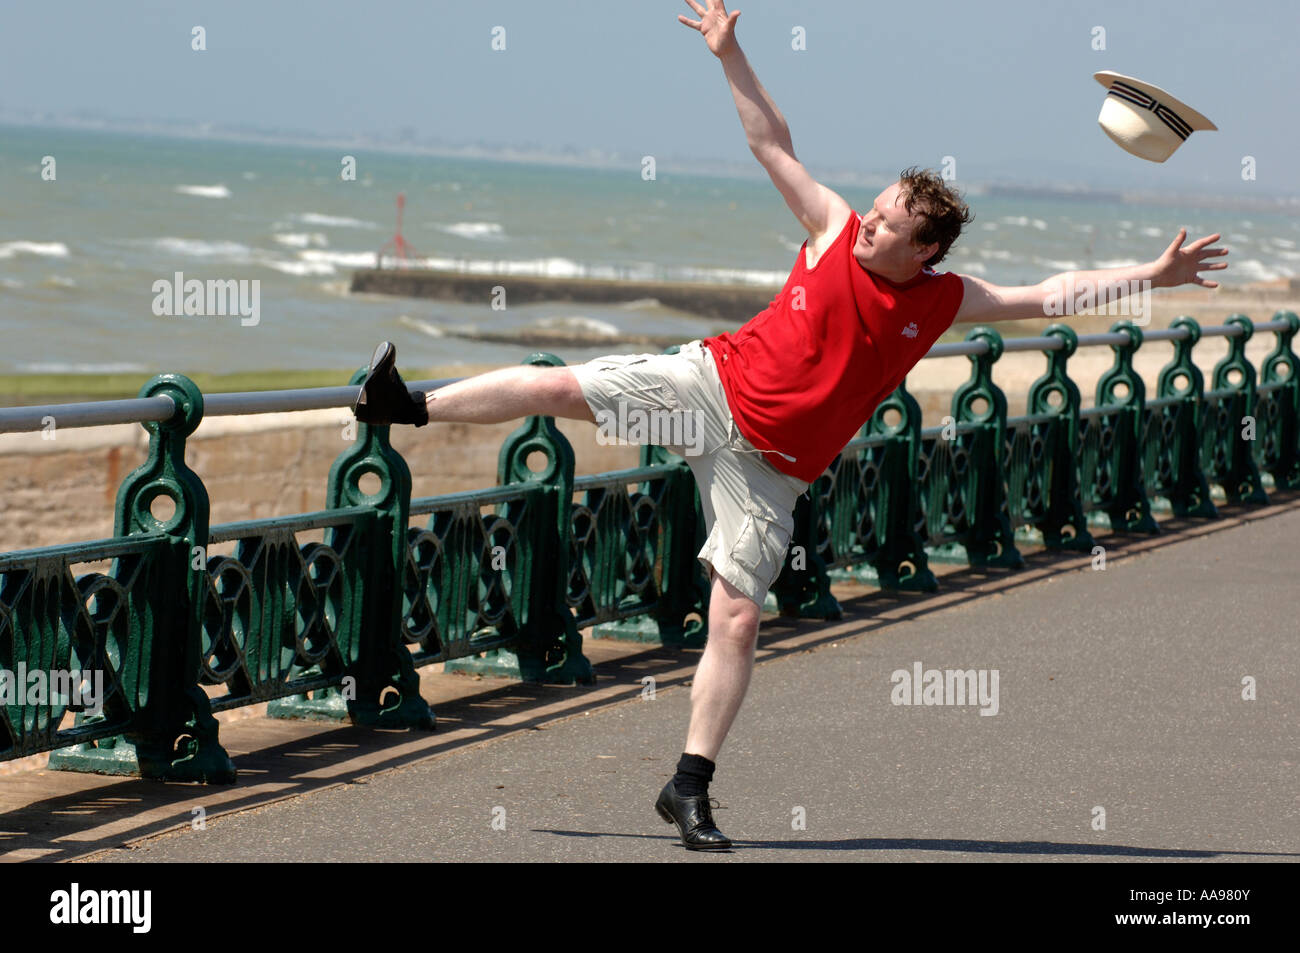 One overweight middle-aged man doing clumsy high kicking dance routine on Brighton seafront  as his hat blows off - Stock Image